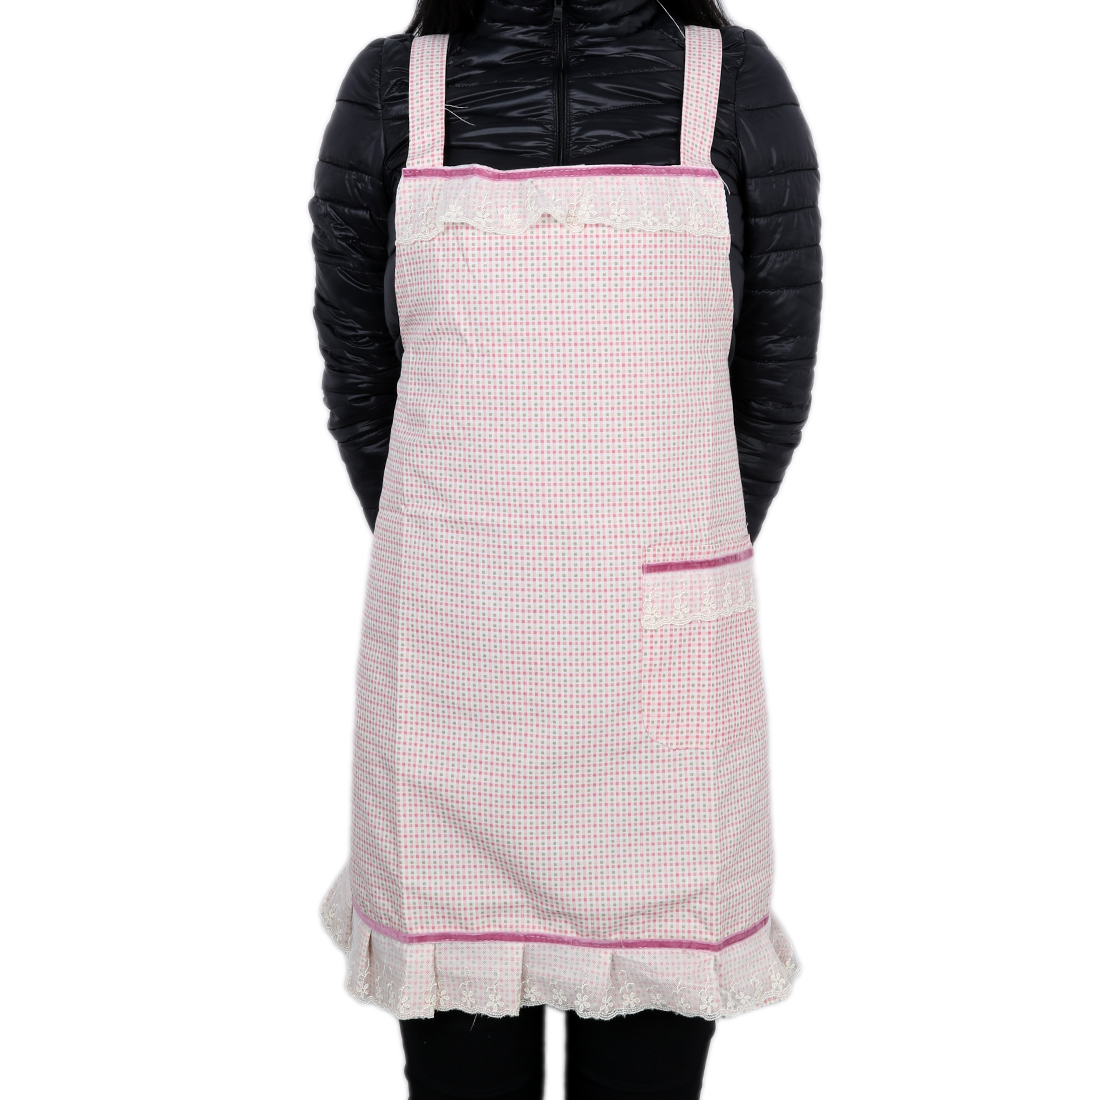 Adult Kitchen Bib Cooking Apron Lady Chefs w Pocket Pink